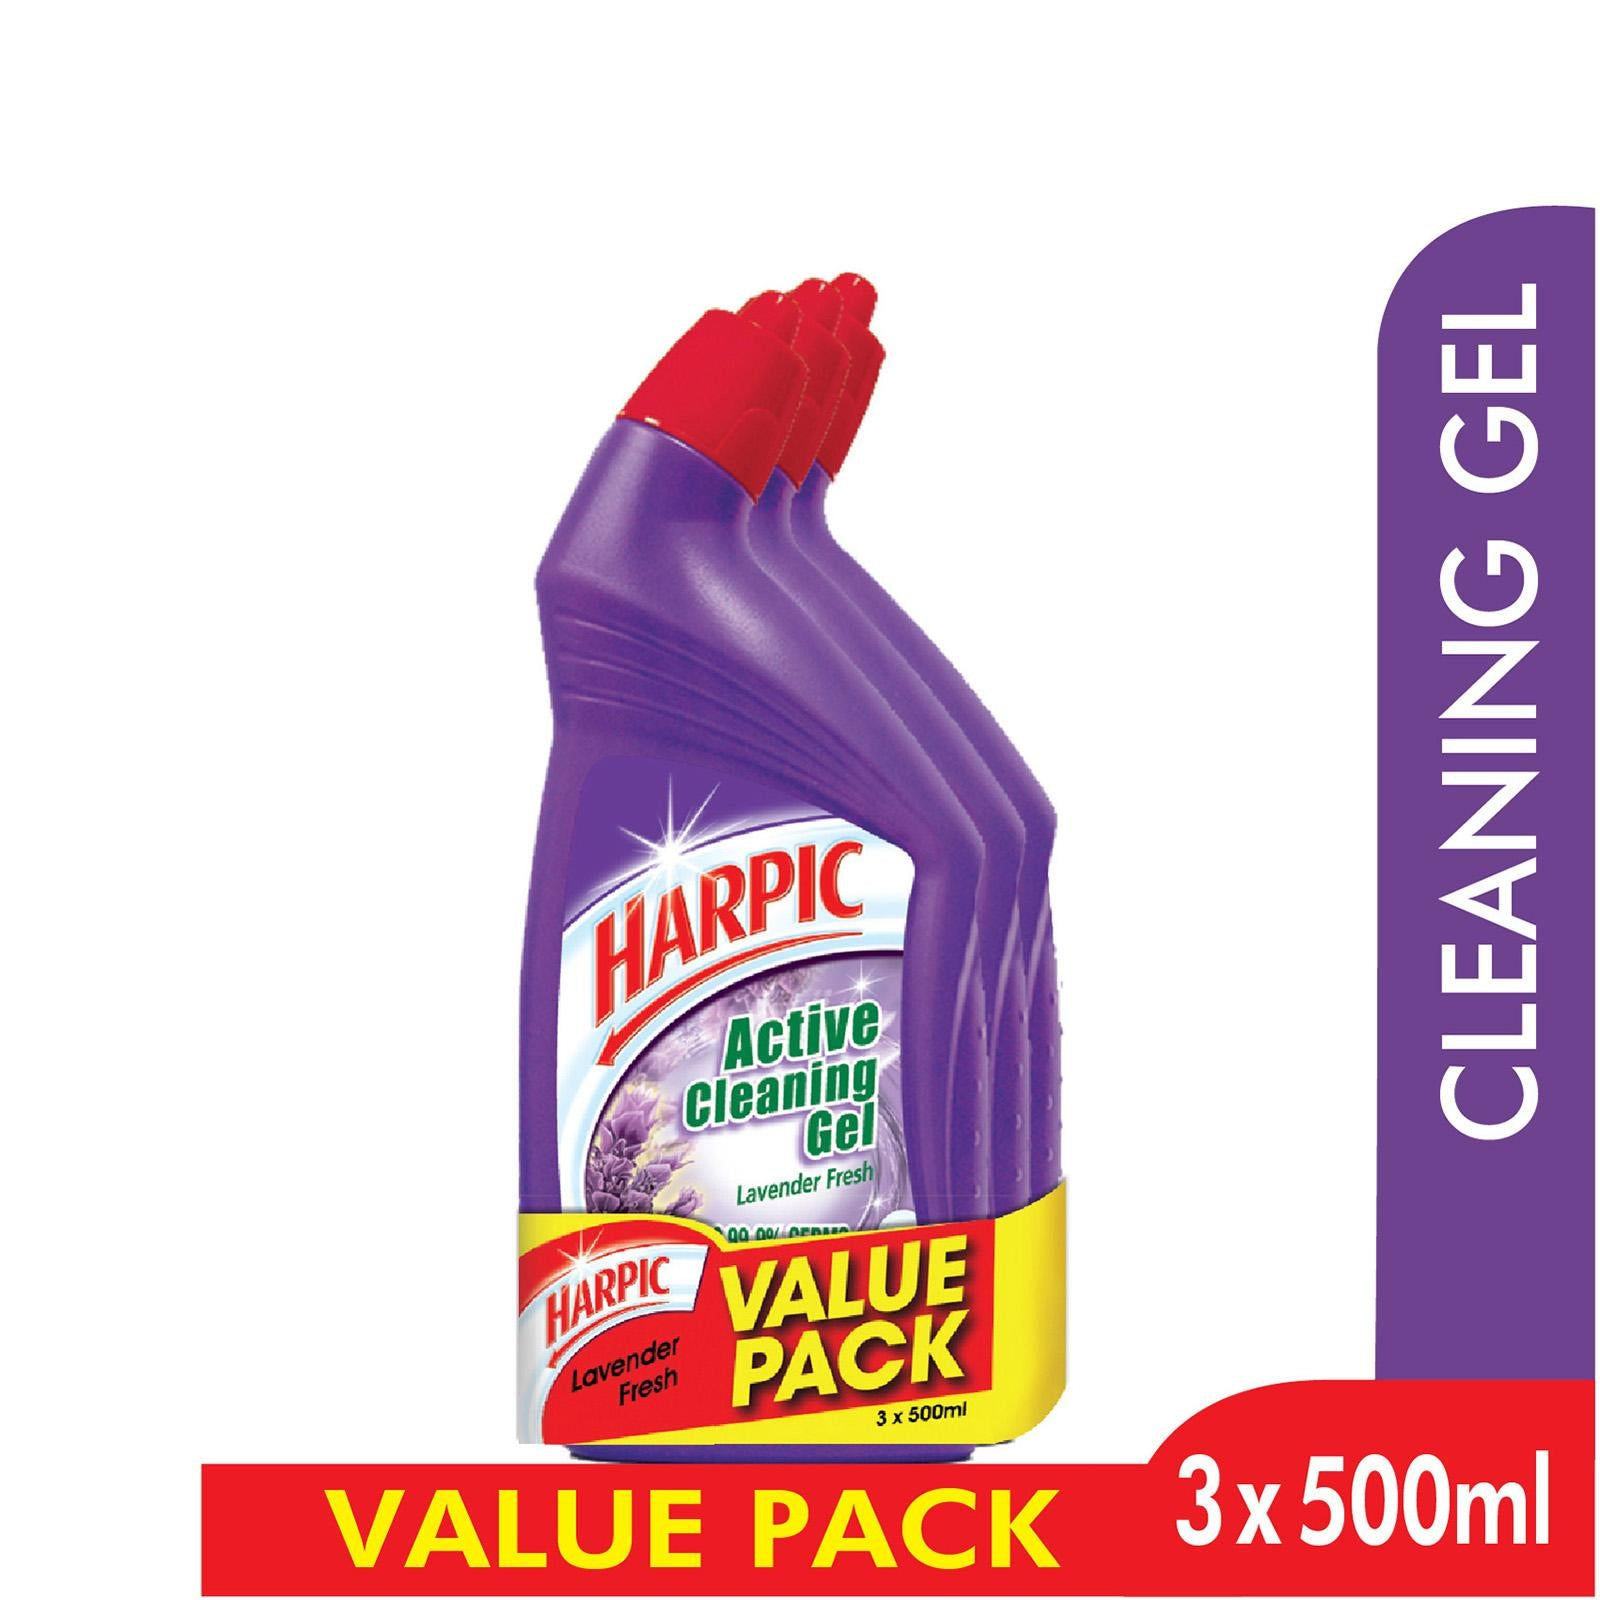 Harpic Active Cleaning Gel 3x500ml Lavender Fresh